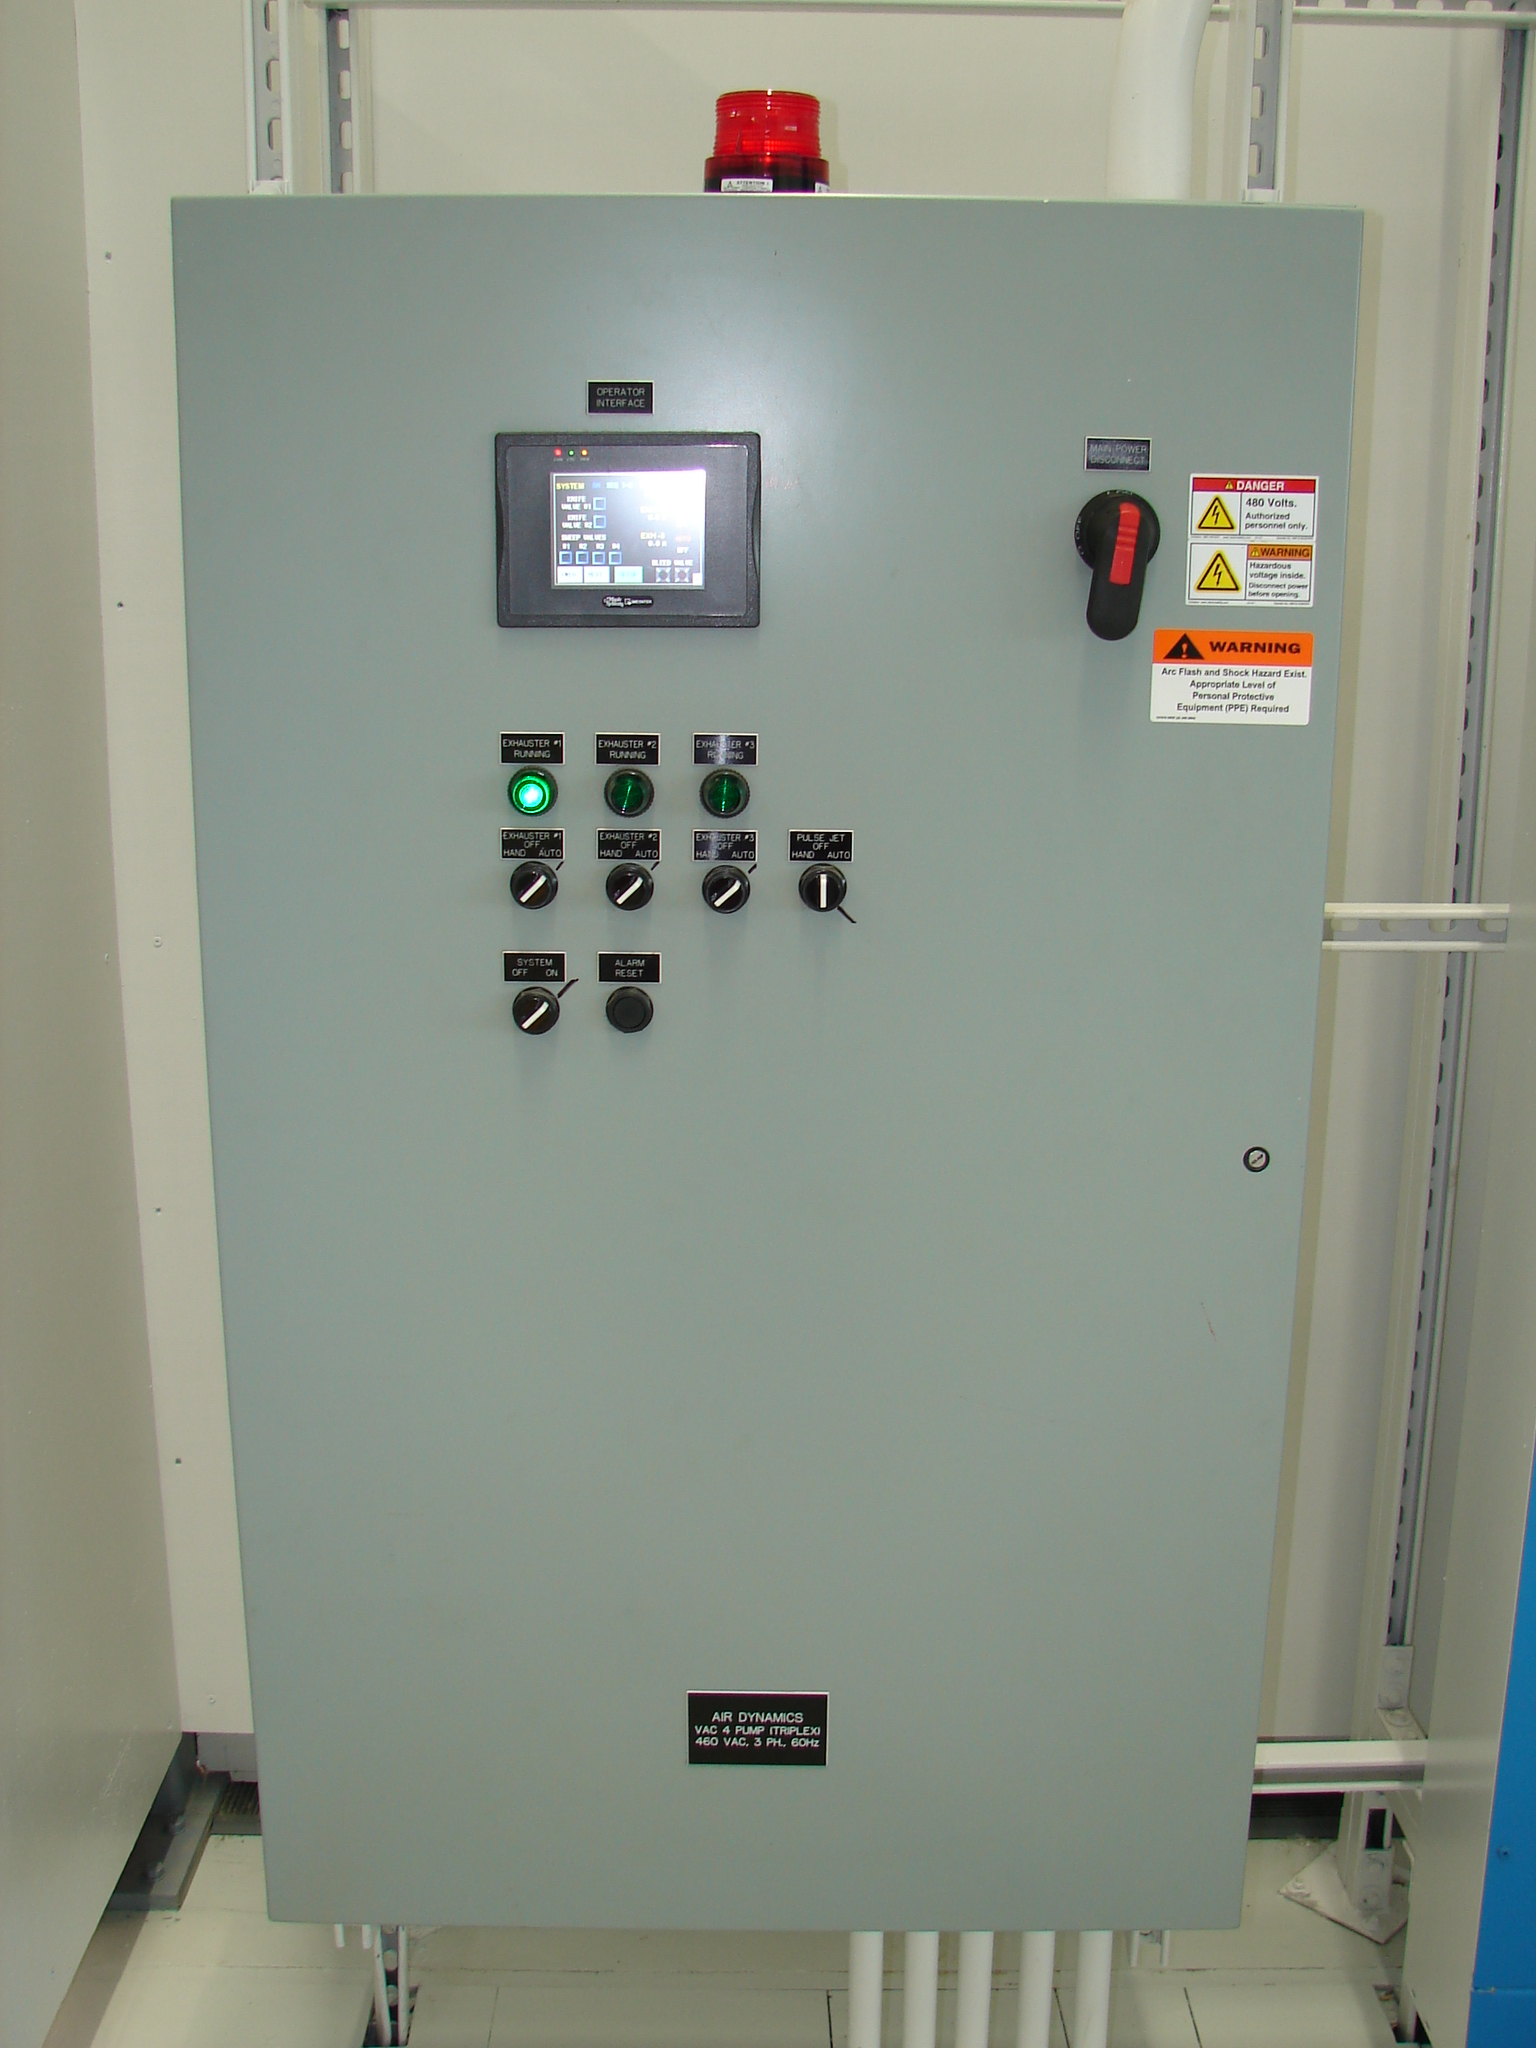 Air Dynamics' CV HMI Control Panel